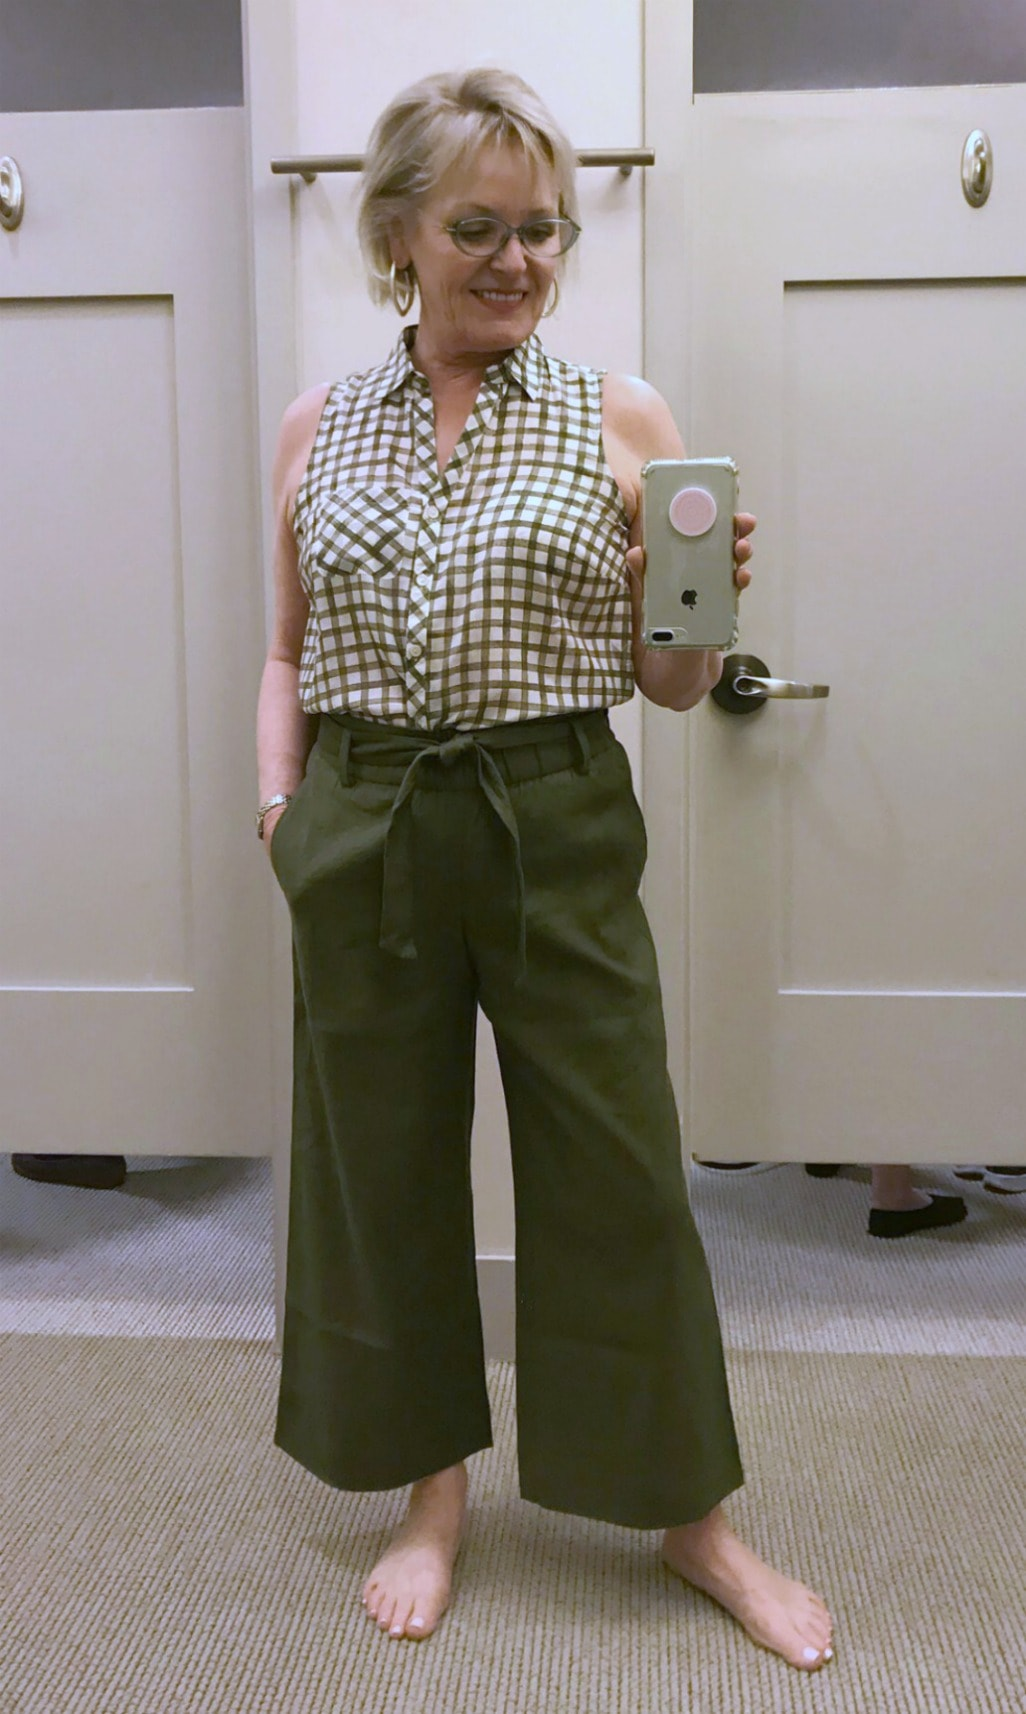 gingham shirt and green wide crop linen pants from J.Jill worn by Jennifer of A Well Styled Life